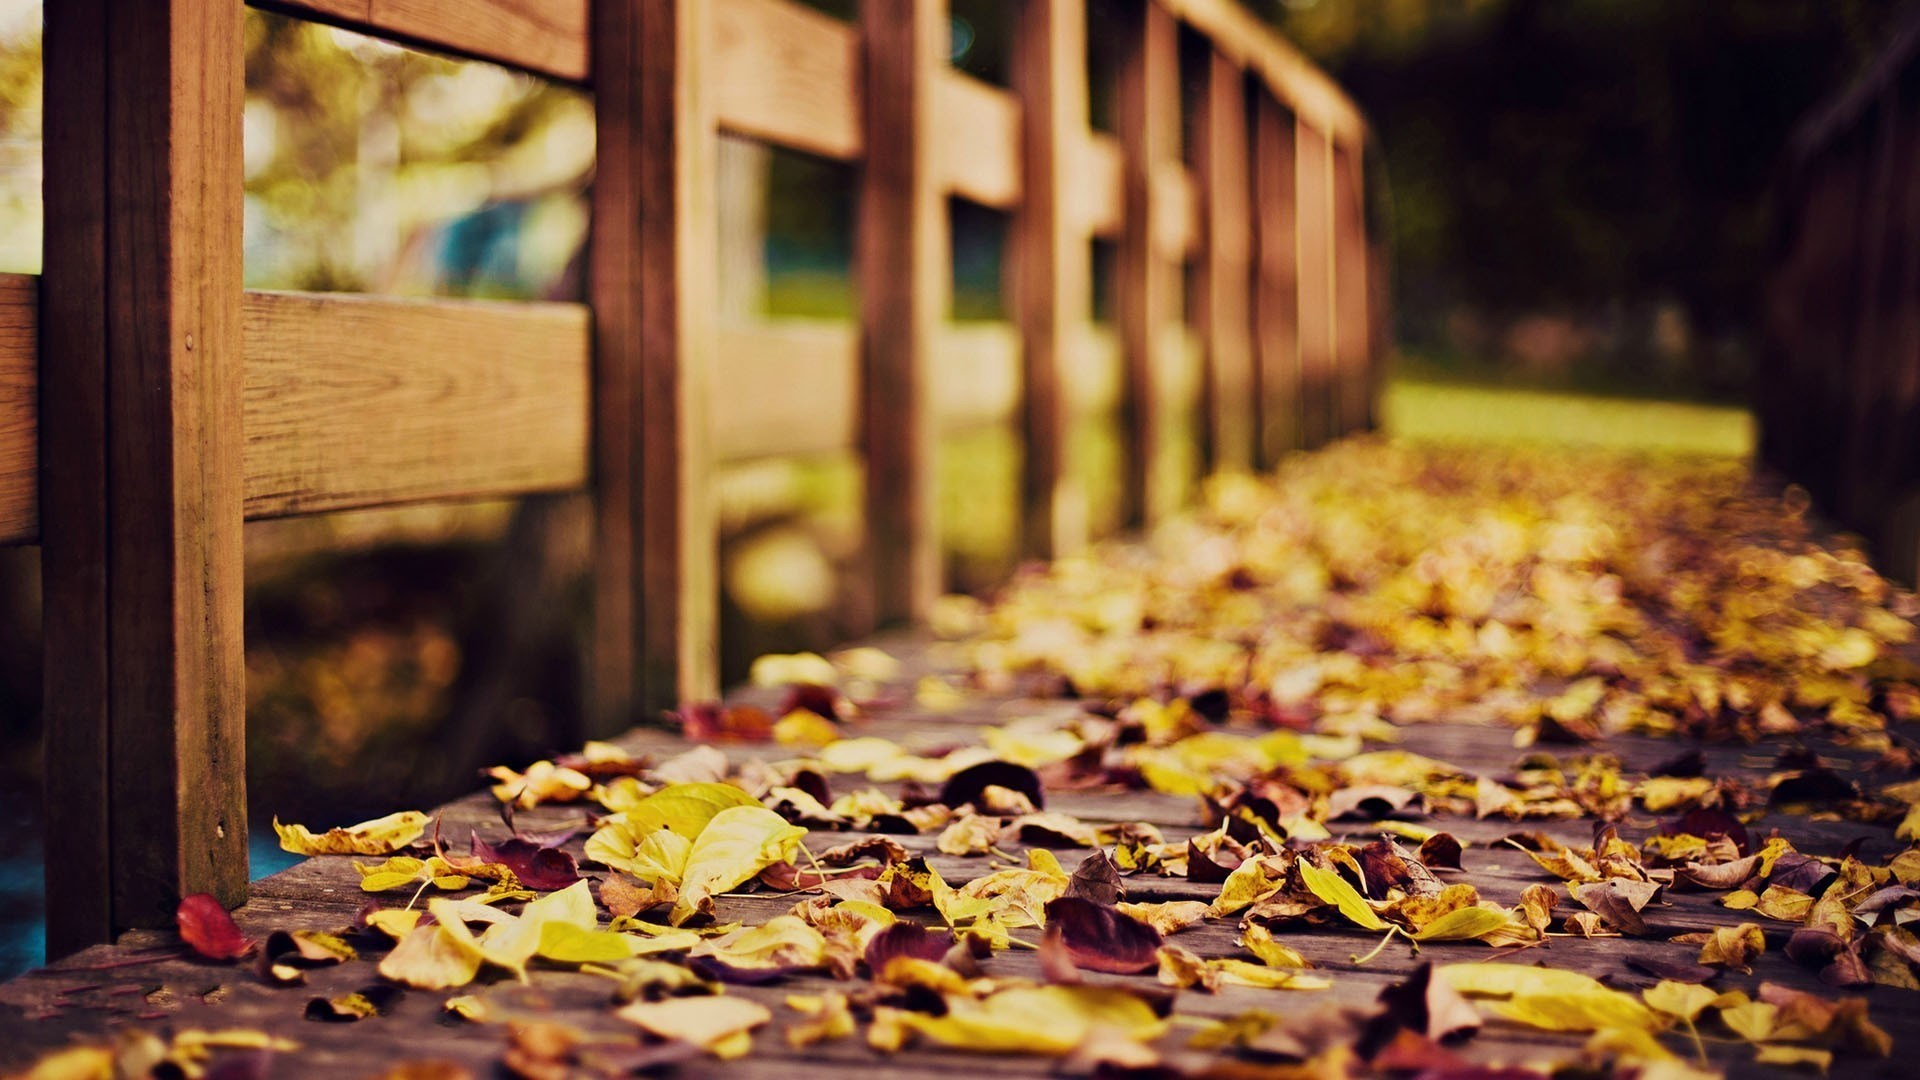 Falling Leaves Wallpaper For Iphone Autumn Full Hd Wallpaper And Background 1920x1080 Id